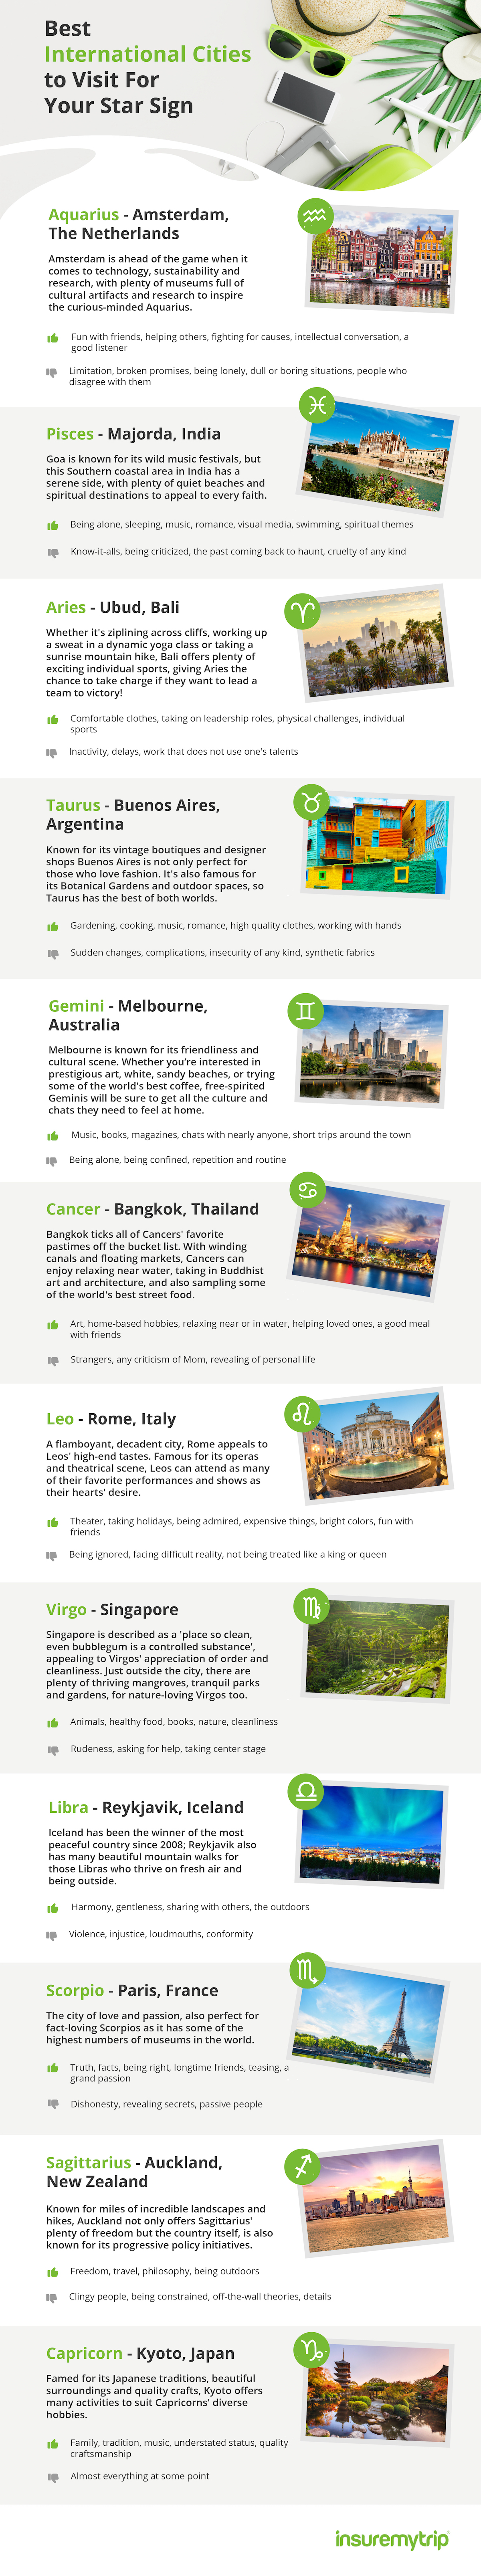 Best International Cities to Visit Based on Zodiac Star Sign